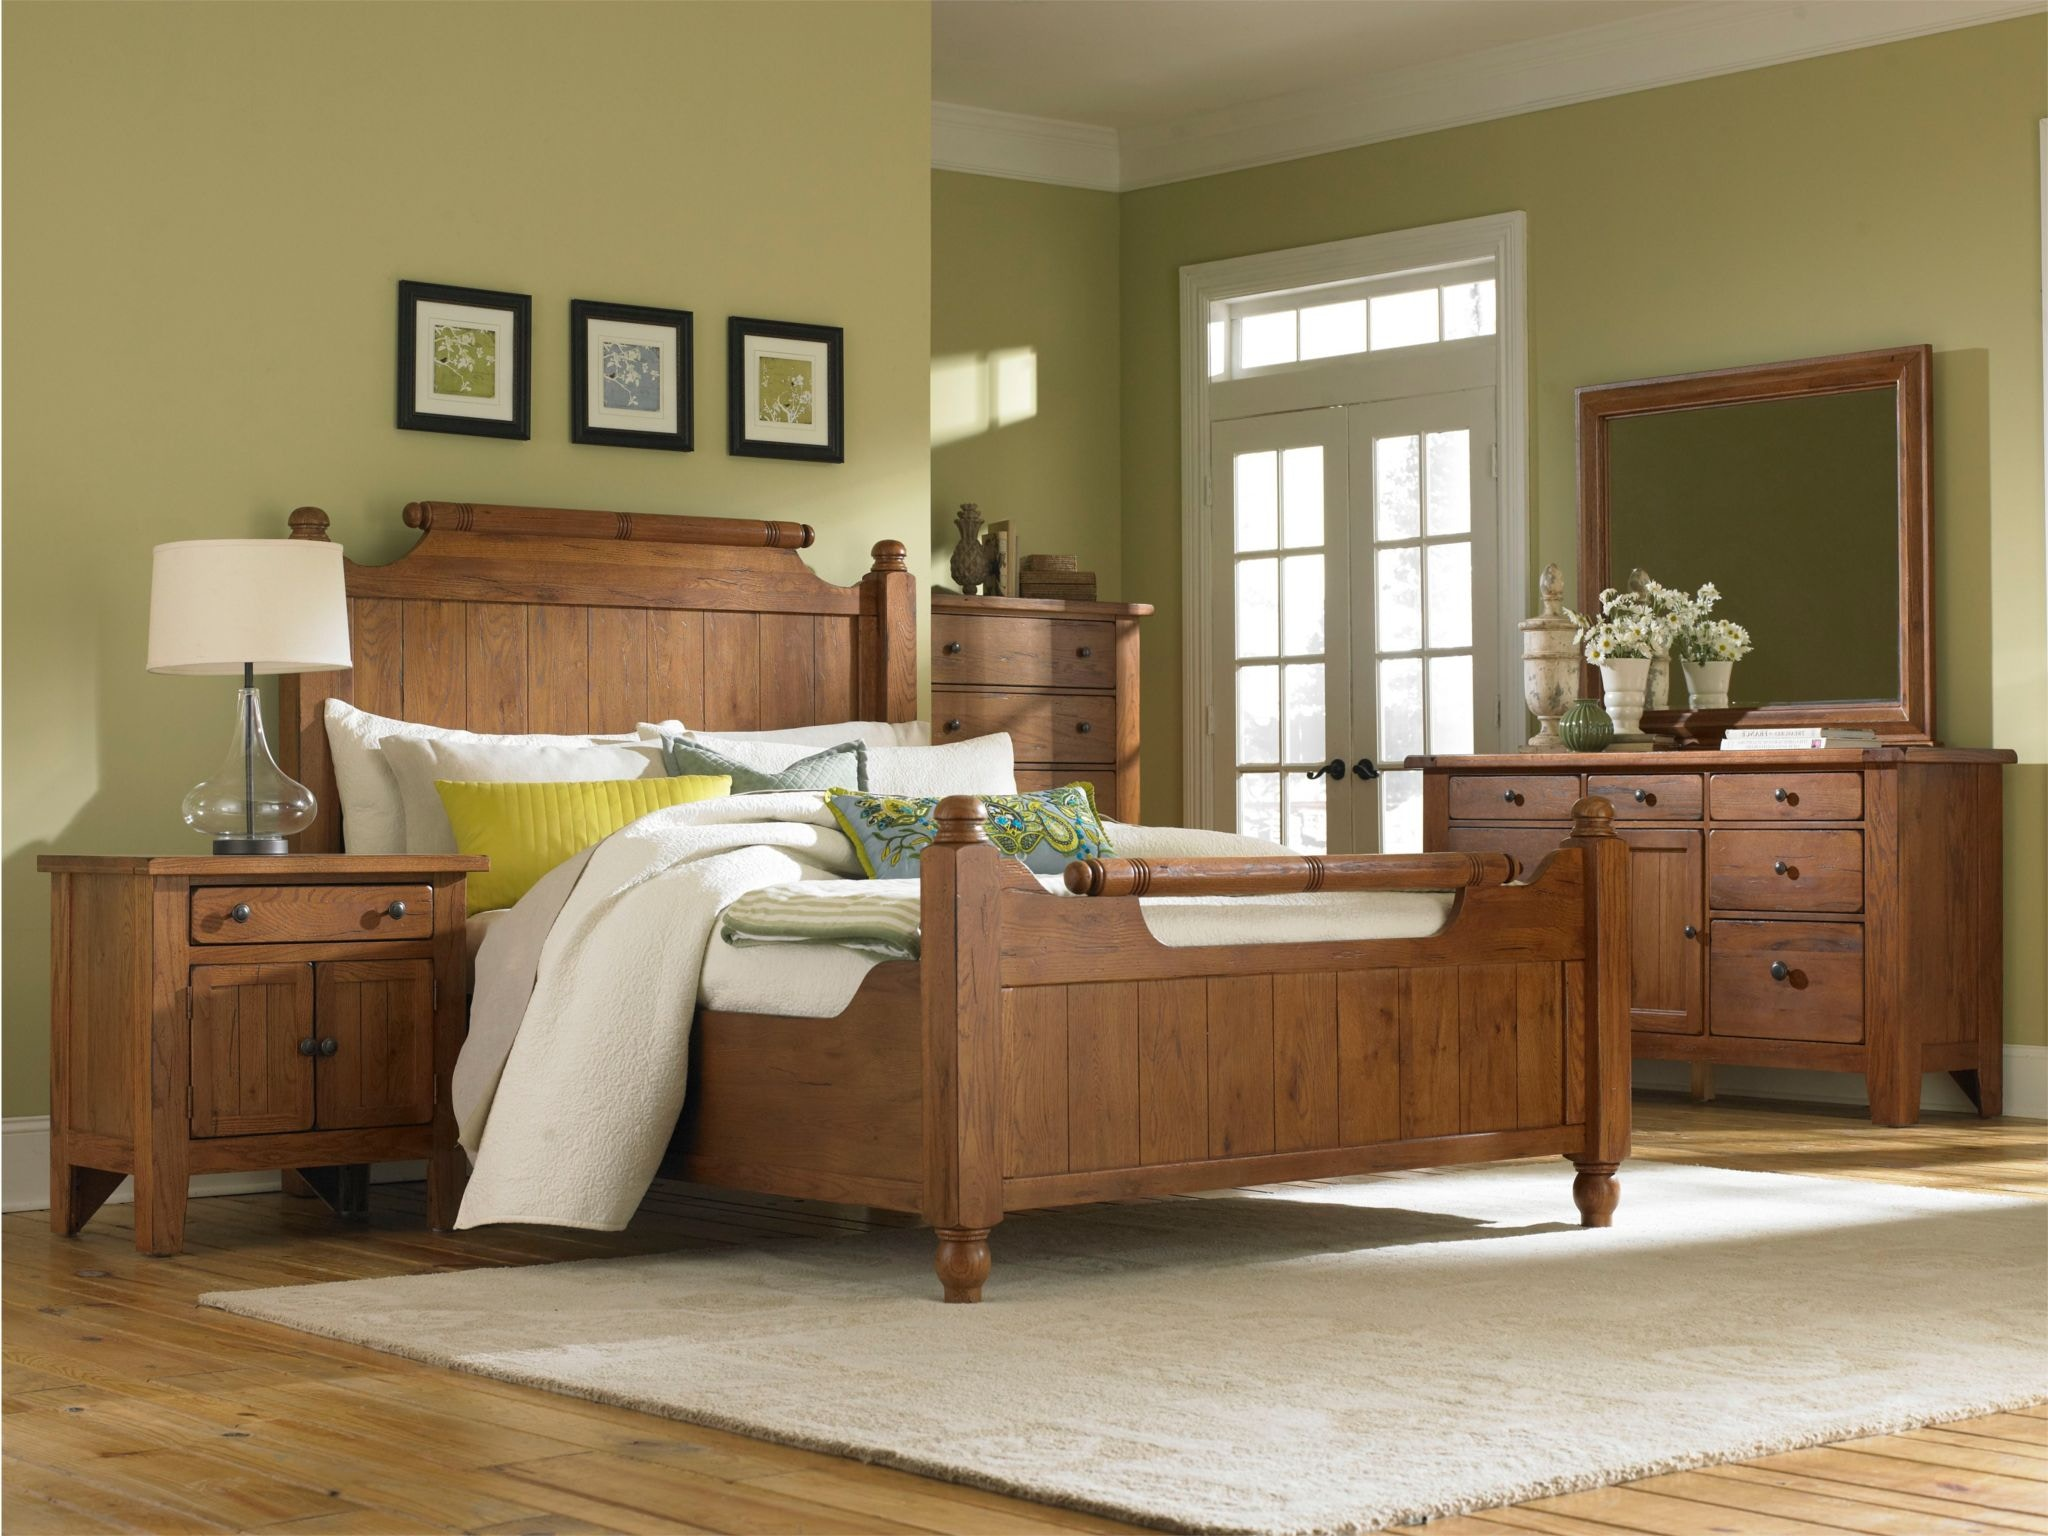 High Quality Broyhill Attic Heirlooms Feather Bed 4397 FEATHER BED